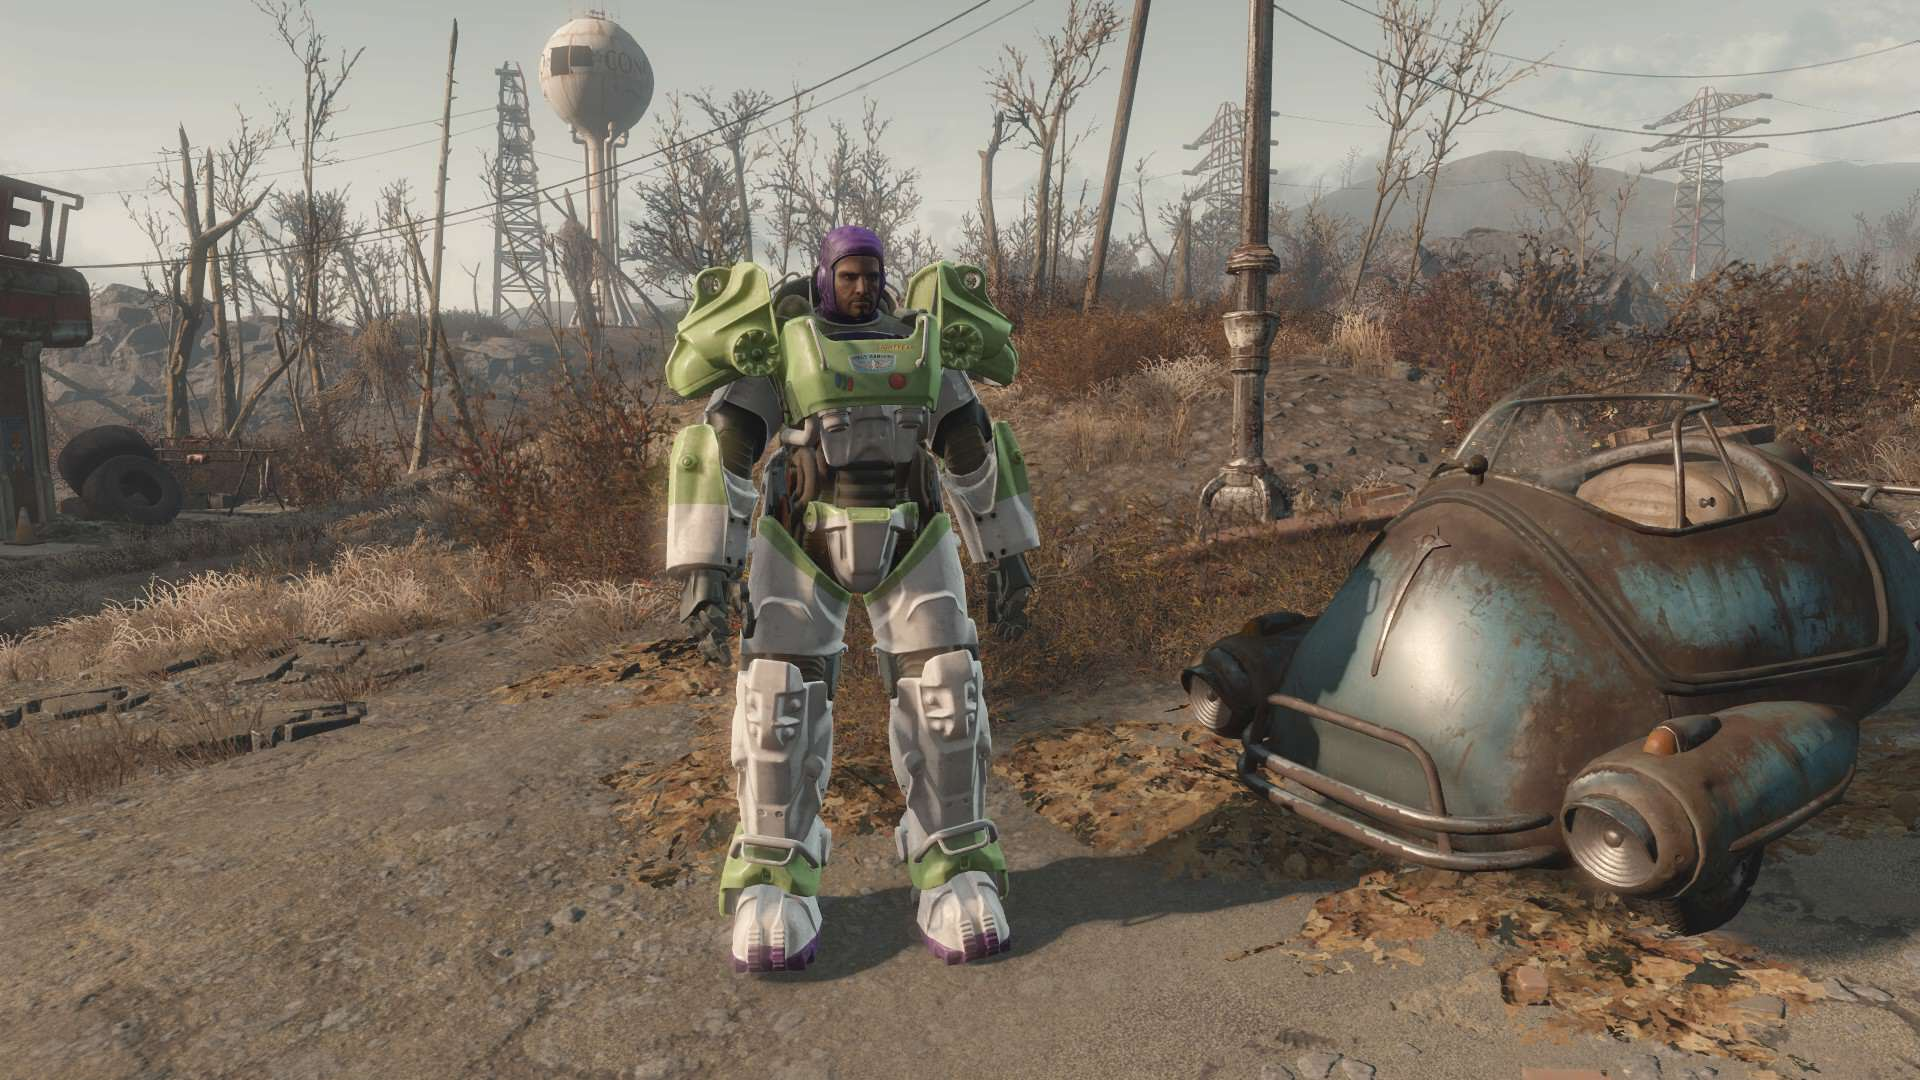 2973141 buzz4 Fallout 4 PS4 Mods Dealt Major Blow By Bethesda